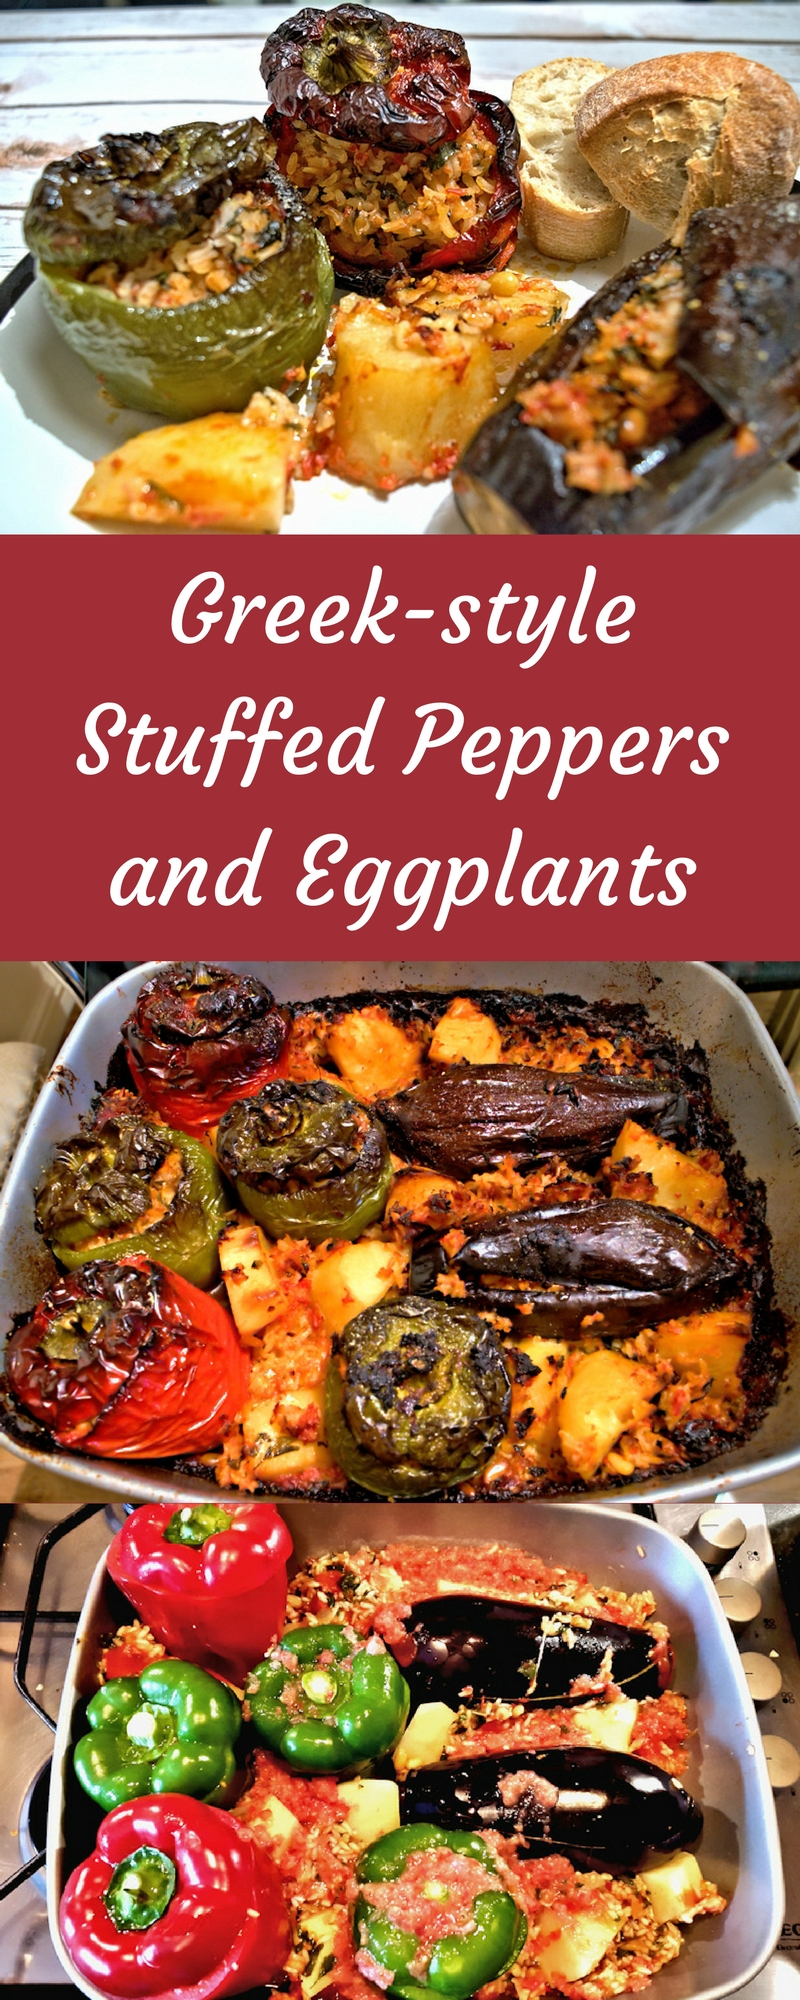 Greek-Style Stuffed Peppers and Eggplants (Gemista) - SocraticFood